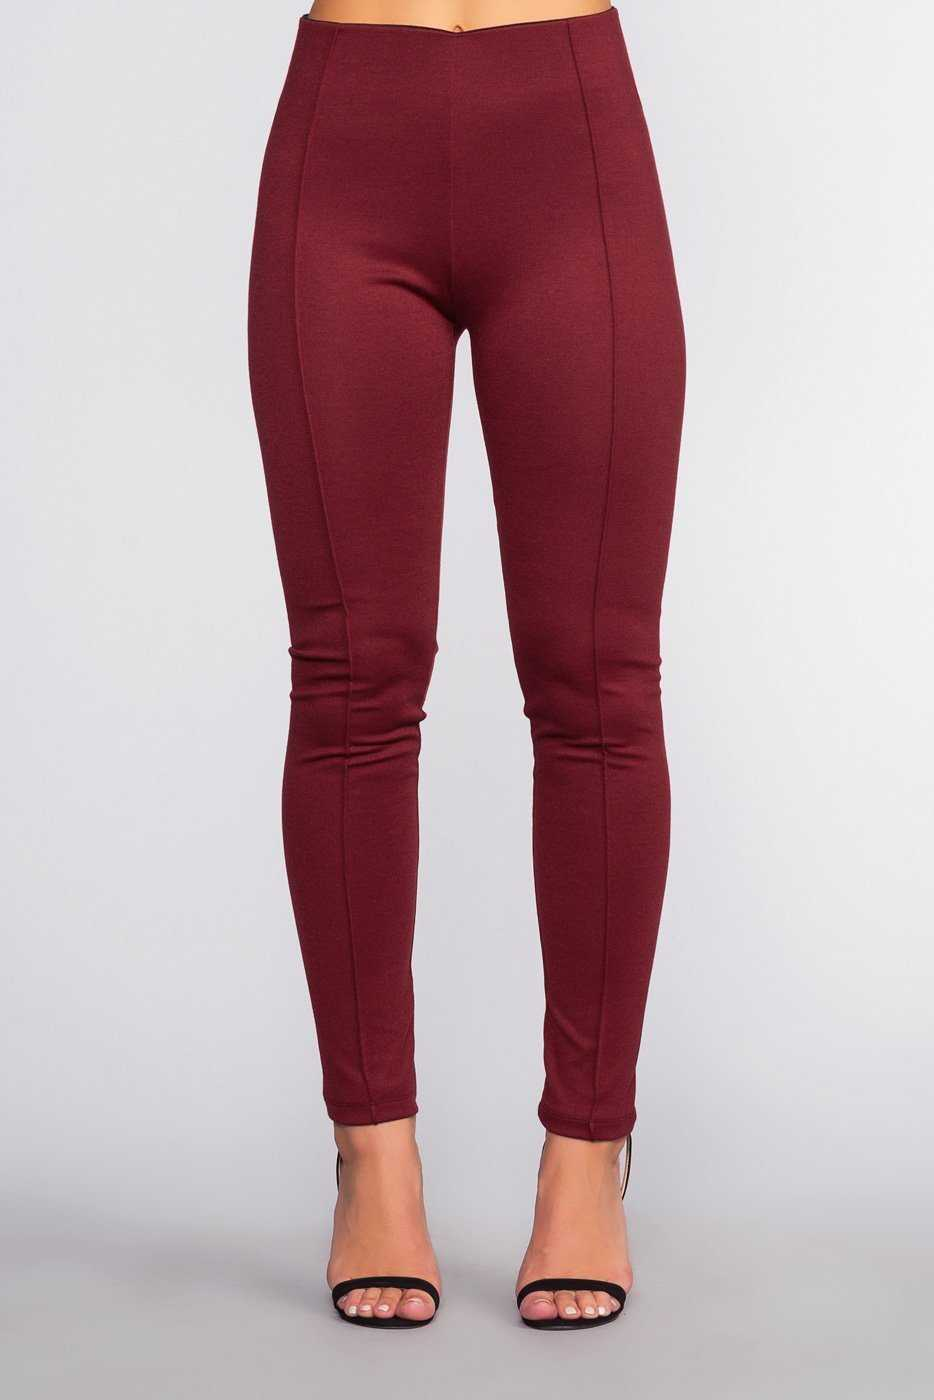 Pants - Sadie Ponte Pants - Burgundy